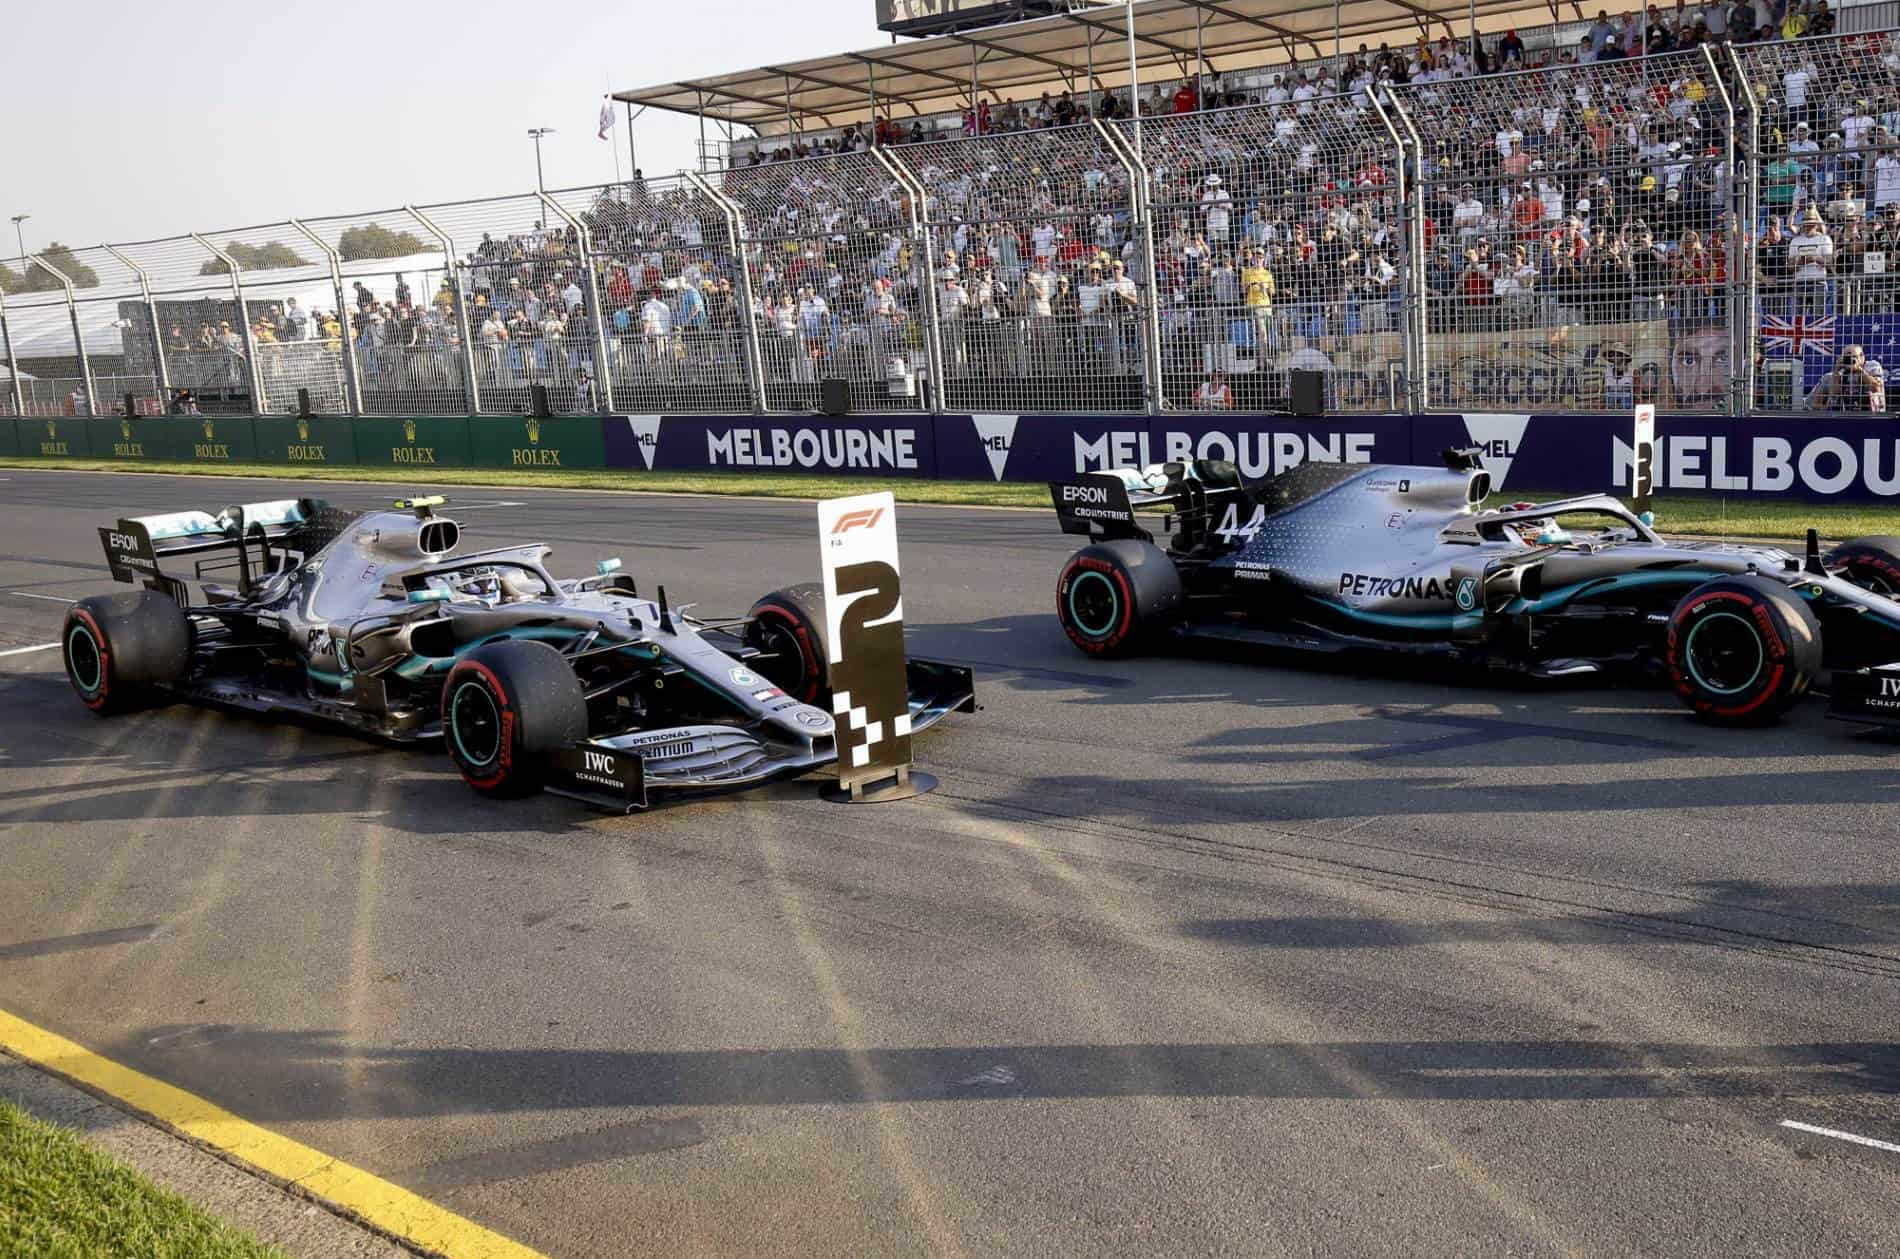 Valtteri Bottas and Lewis Hamilton Mercedes Australian GP F1 2019 post qualifying on track Photo Daimler Edited by MAXF1net